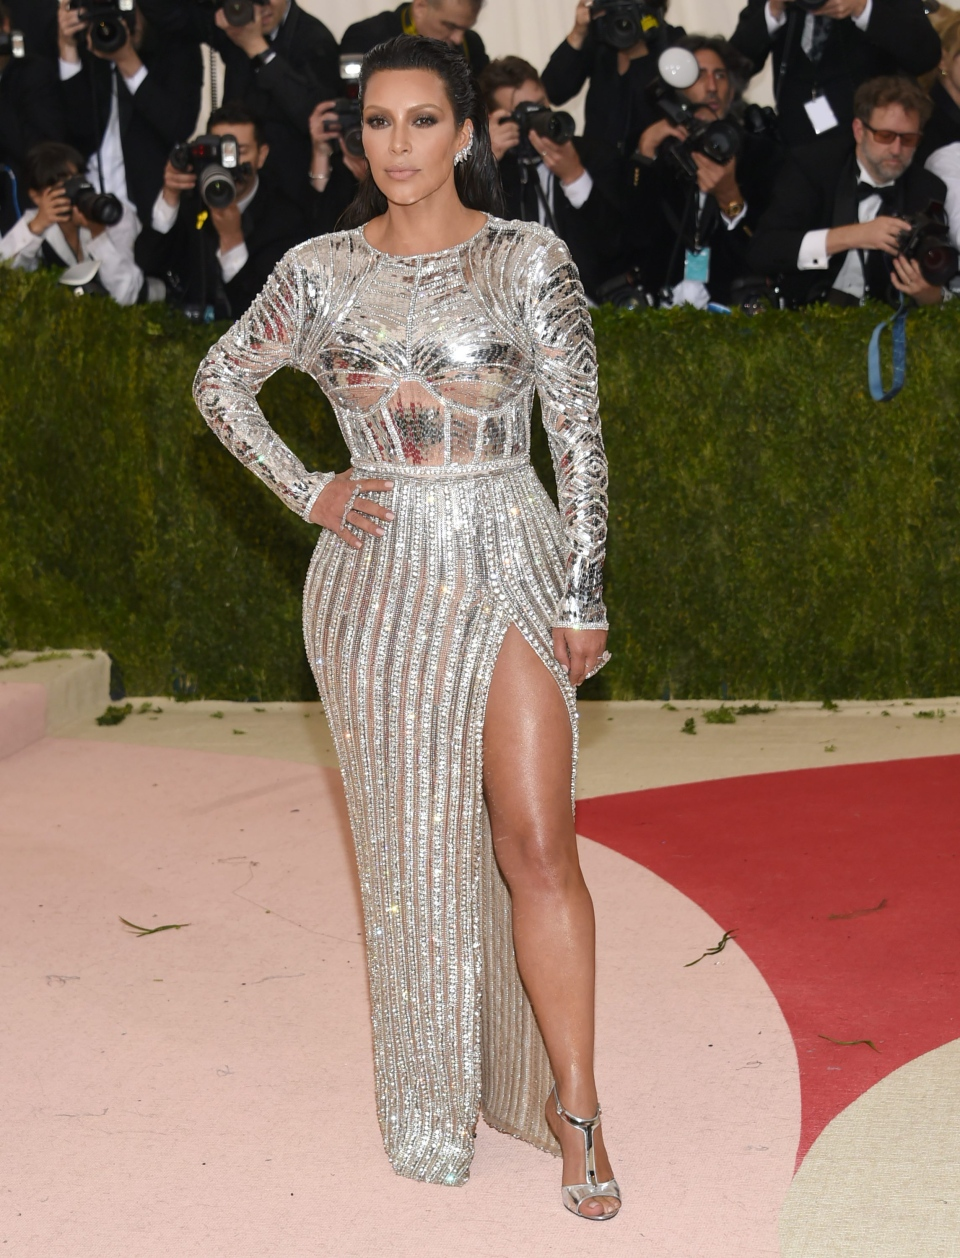 a420f7835fb Kim Kardashian arrives at The Metropolitan Museum of Art Costume Institute  Benefit Gala